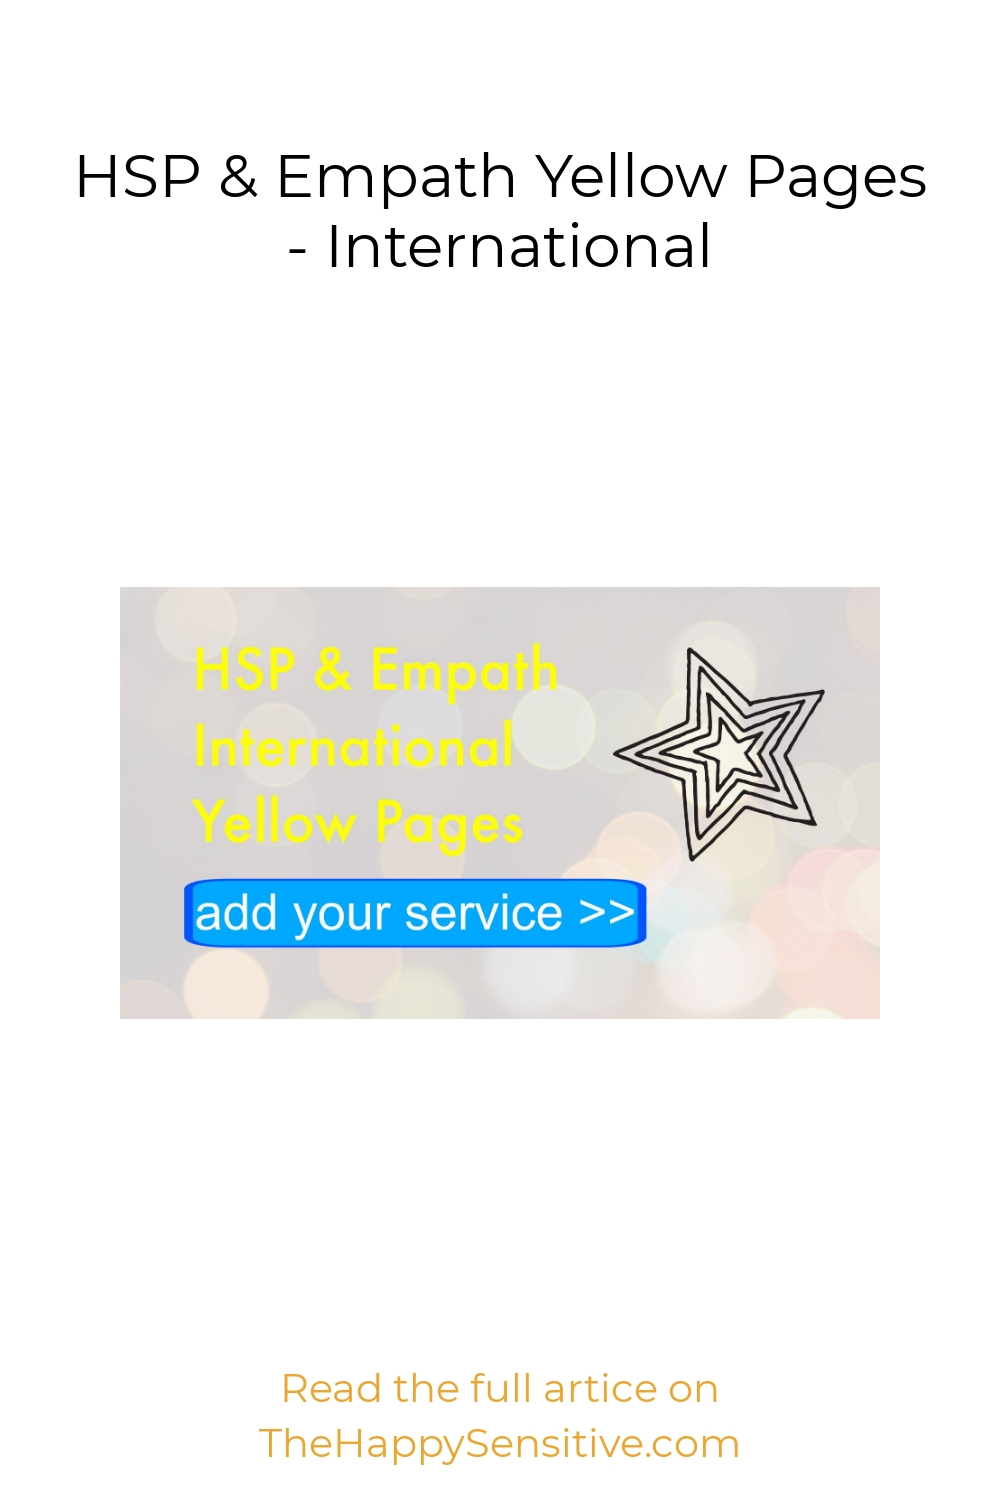 HSP & Empath Yellow Pages – International